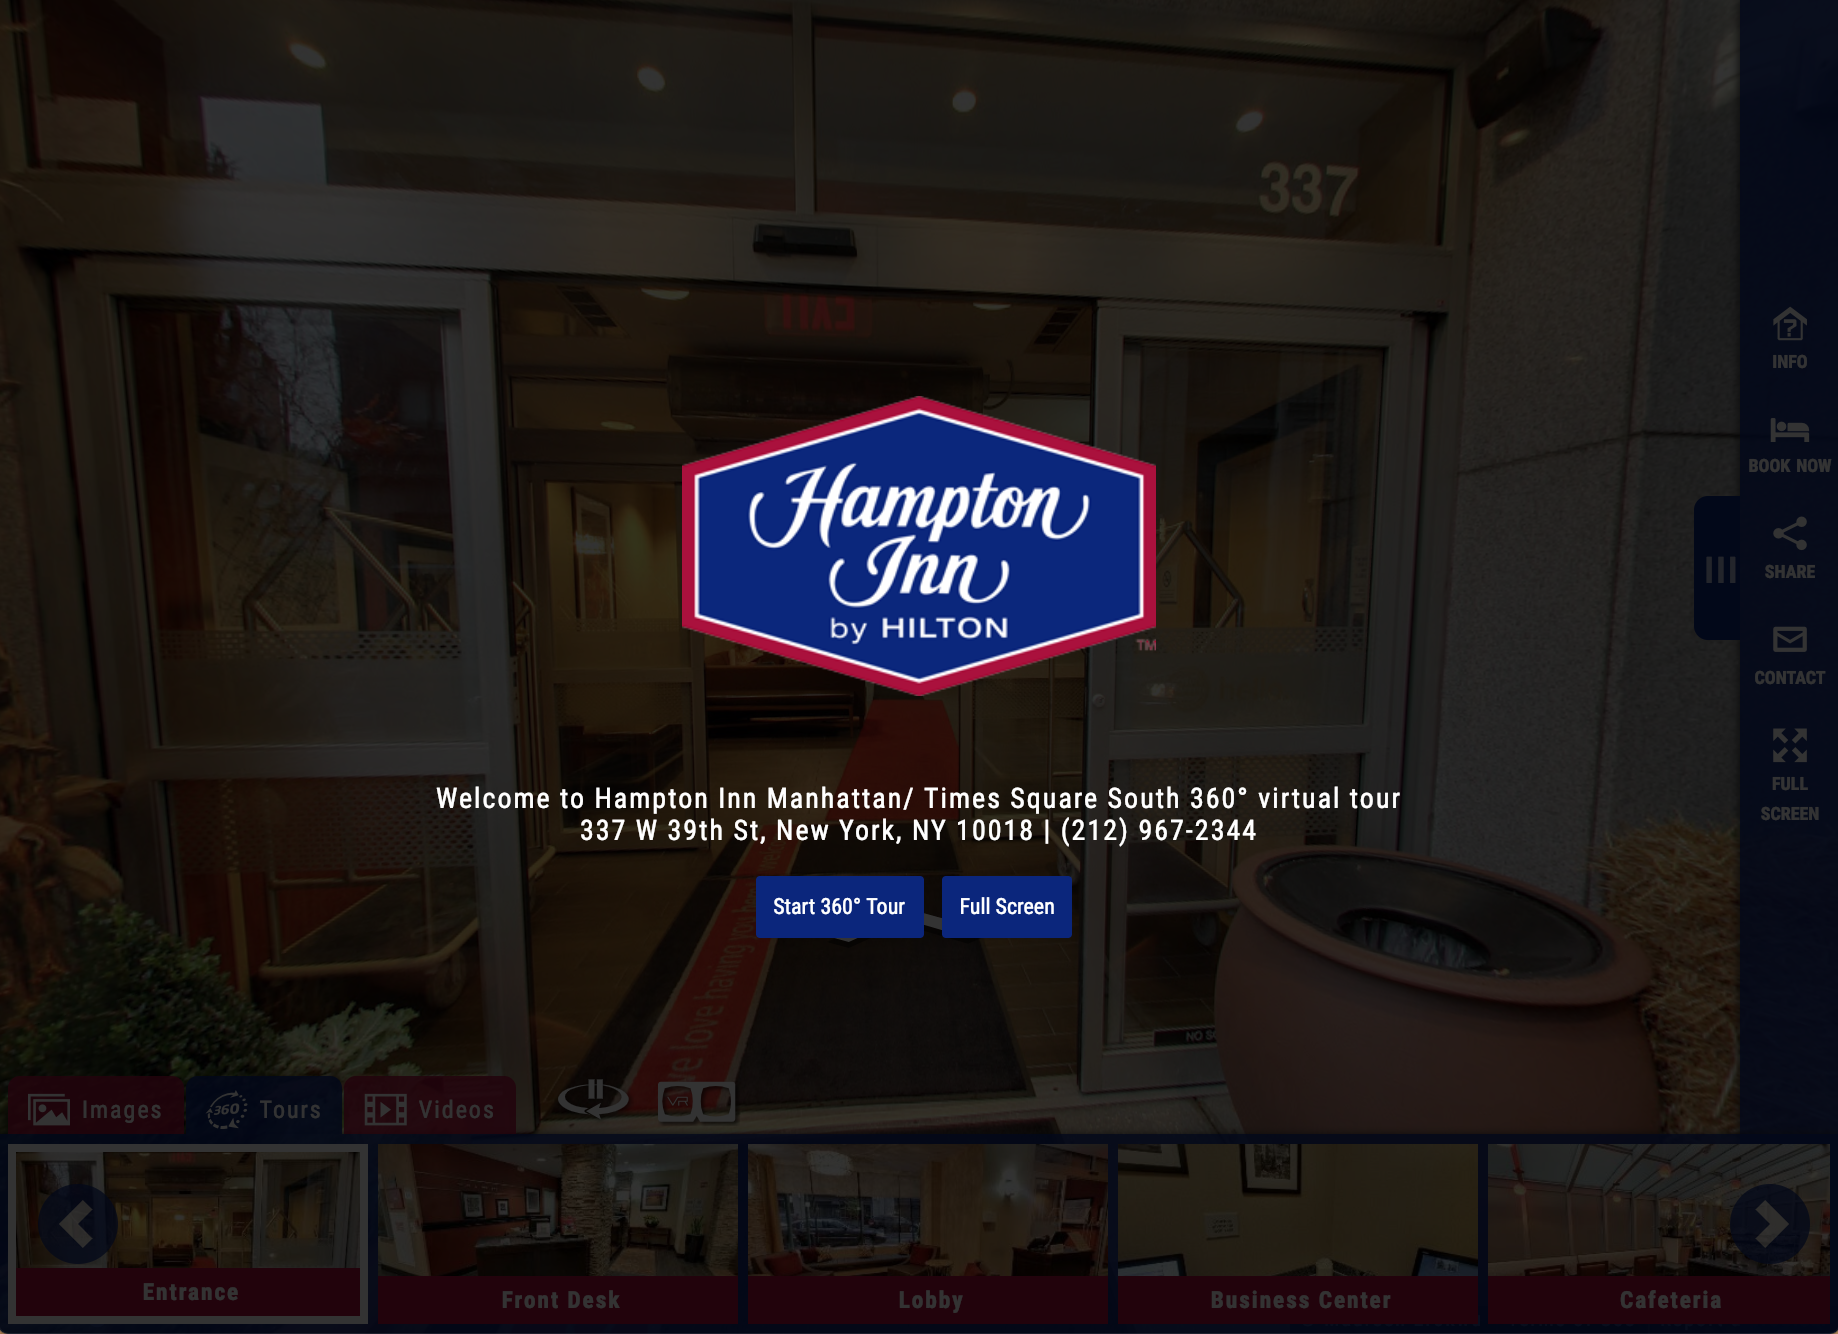 Hamtpon Inn by Hilton - New York.png